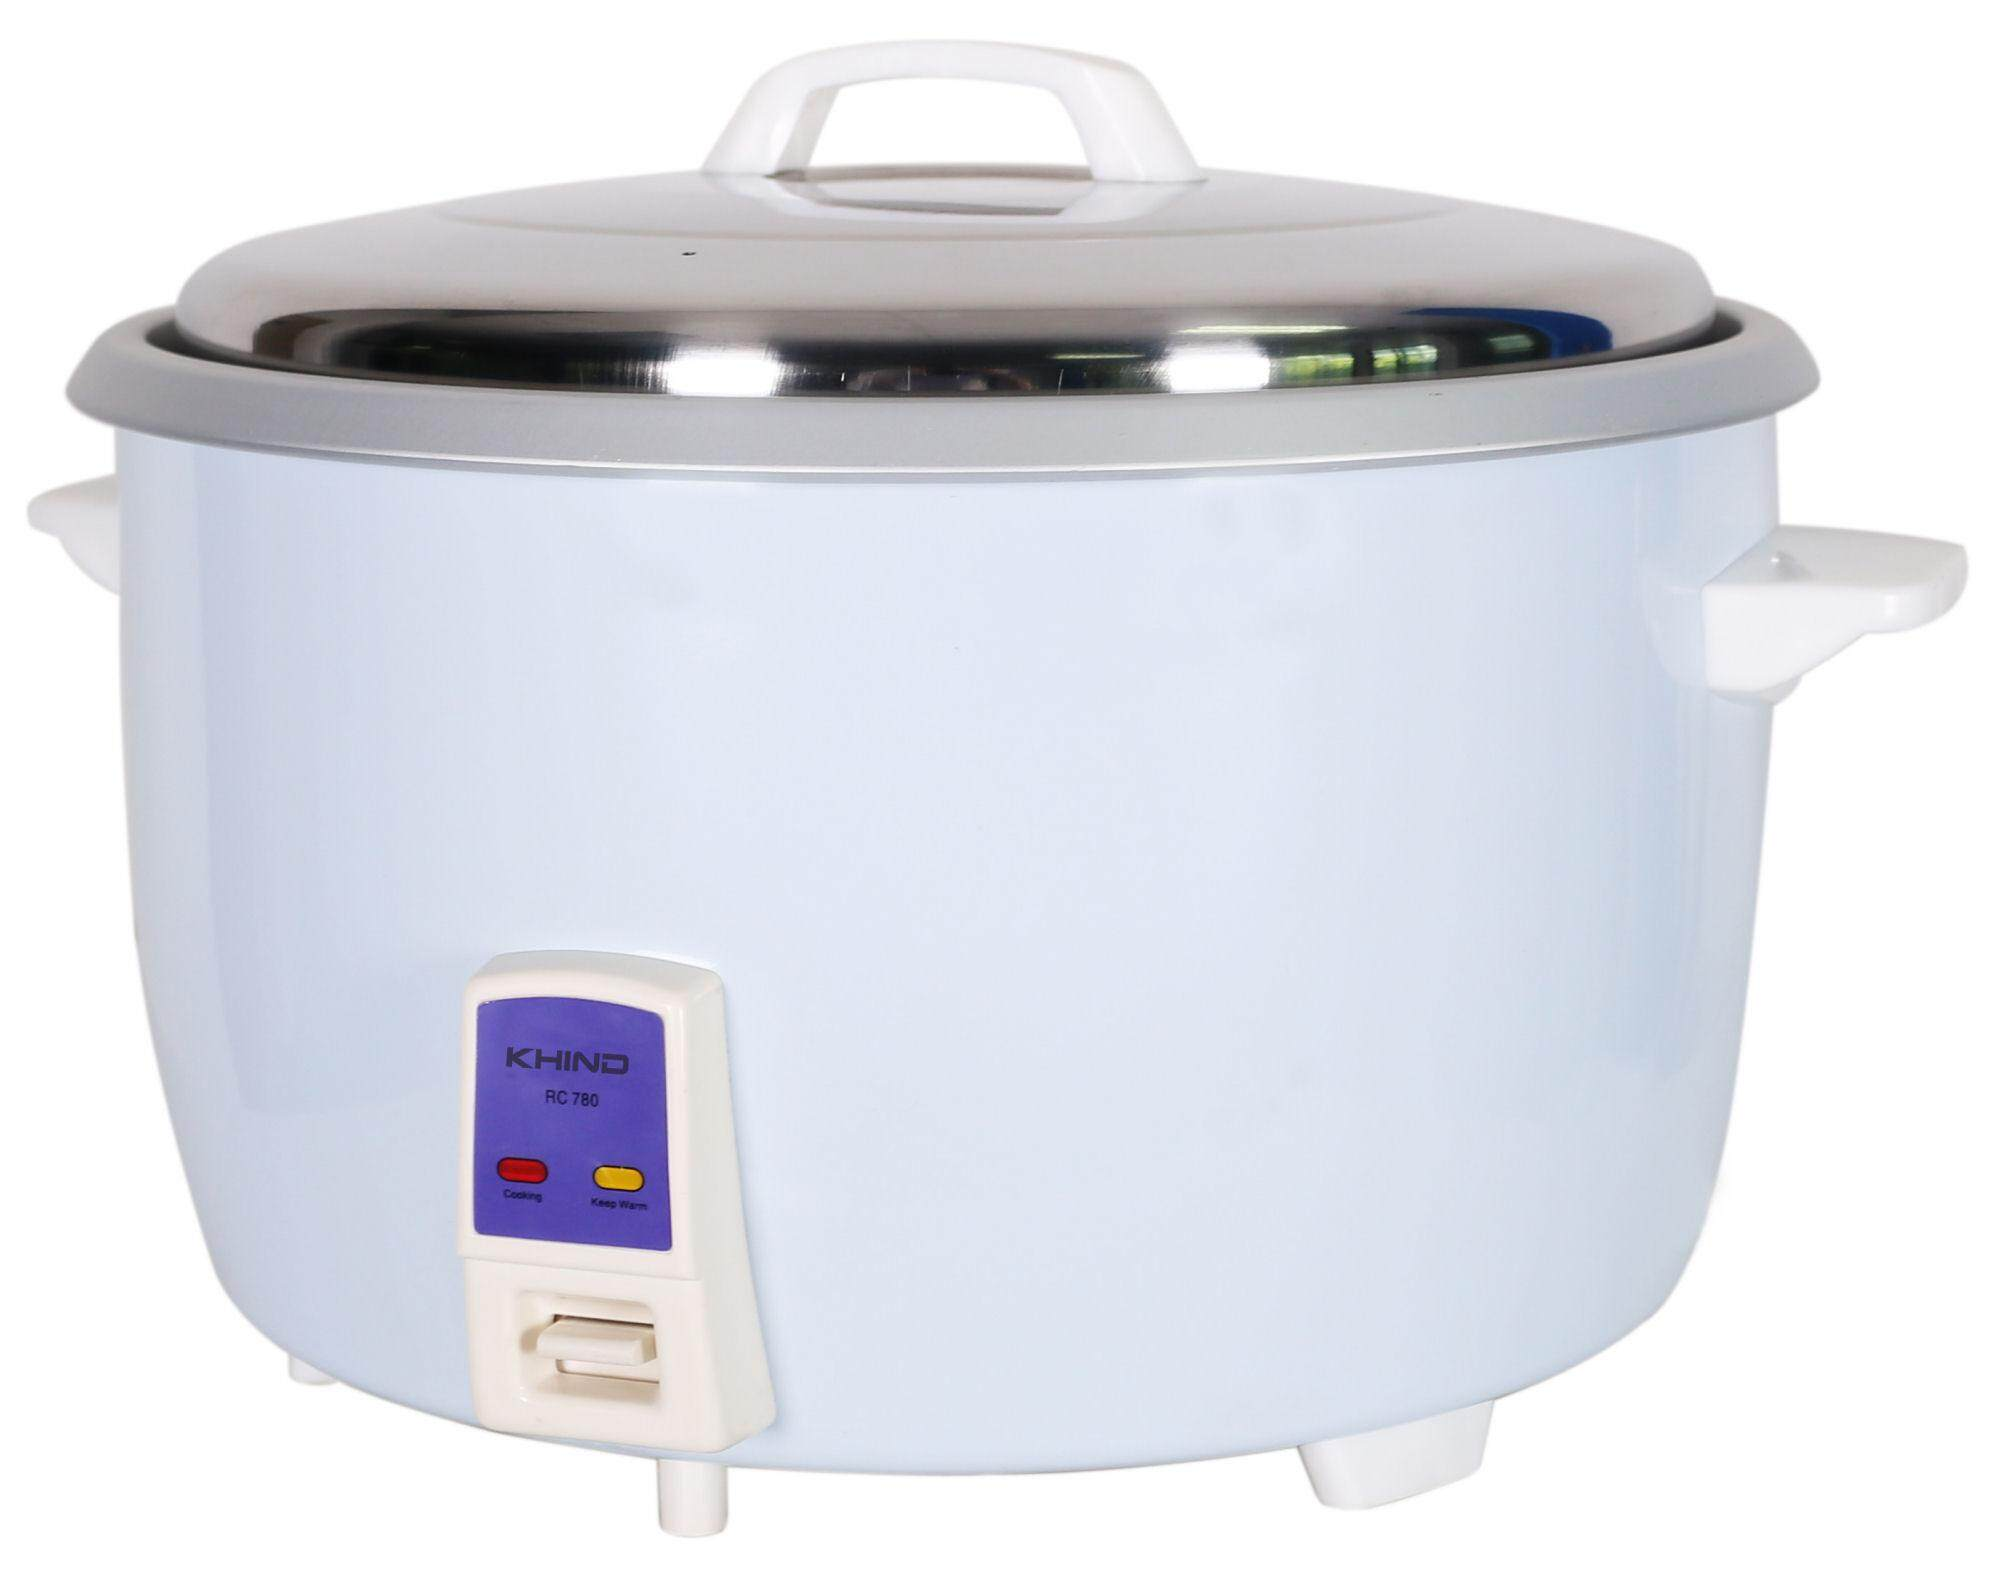 Khind Rice Cooker Rc780 7.8l 35cups_3204006 By Ediyonline.com.my.